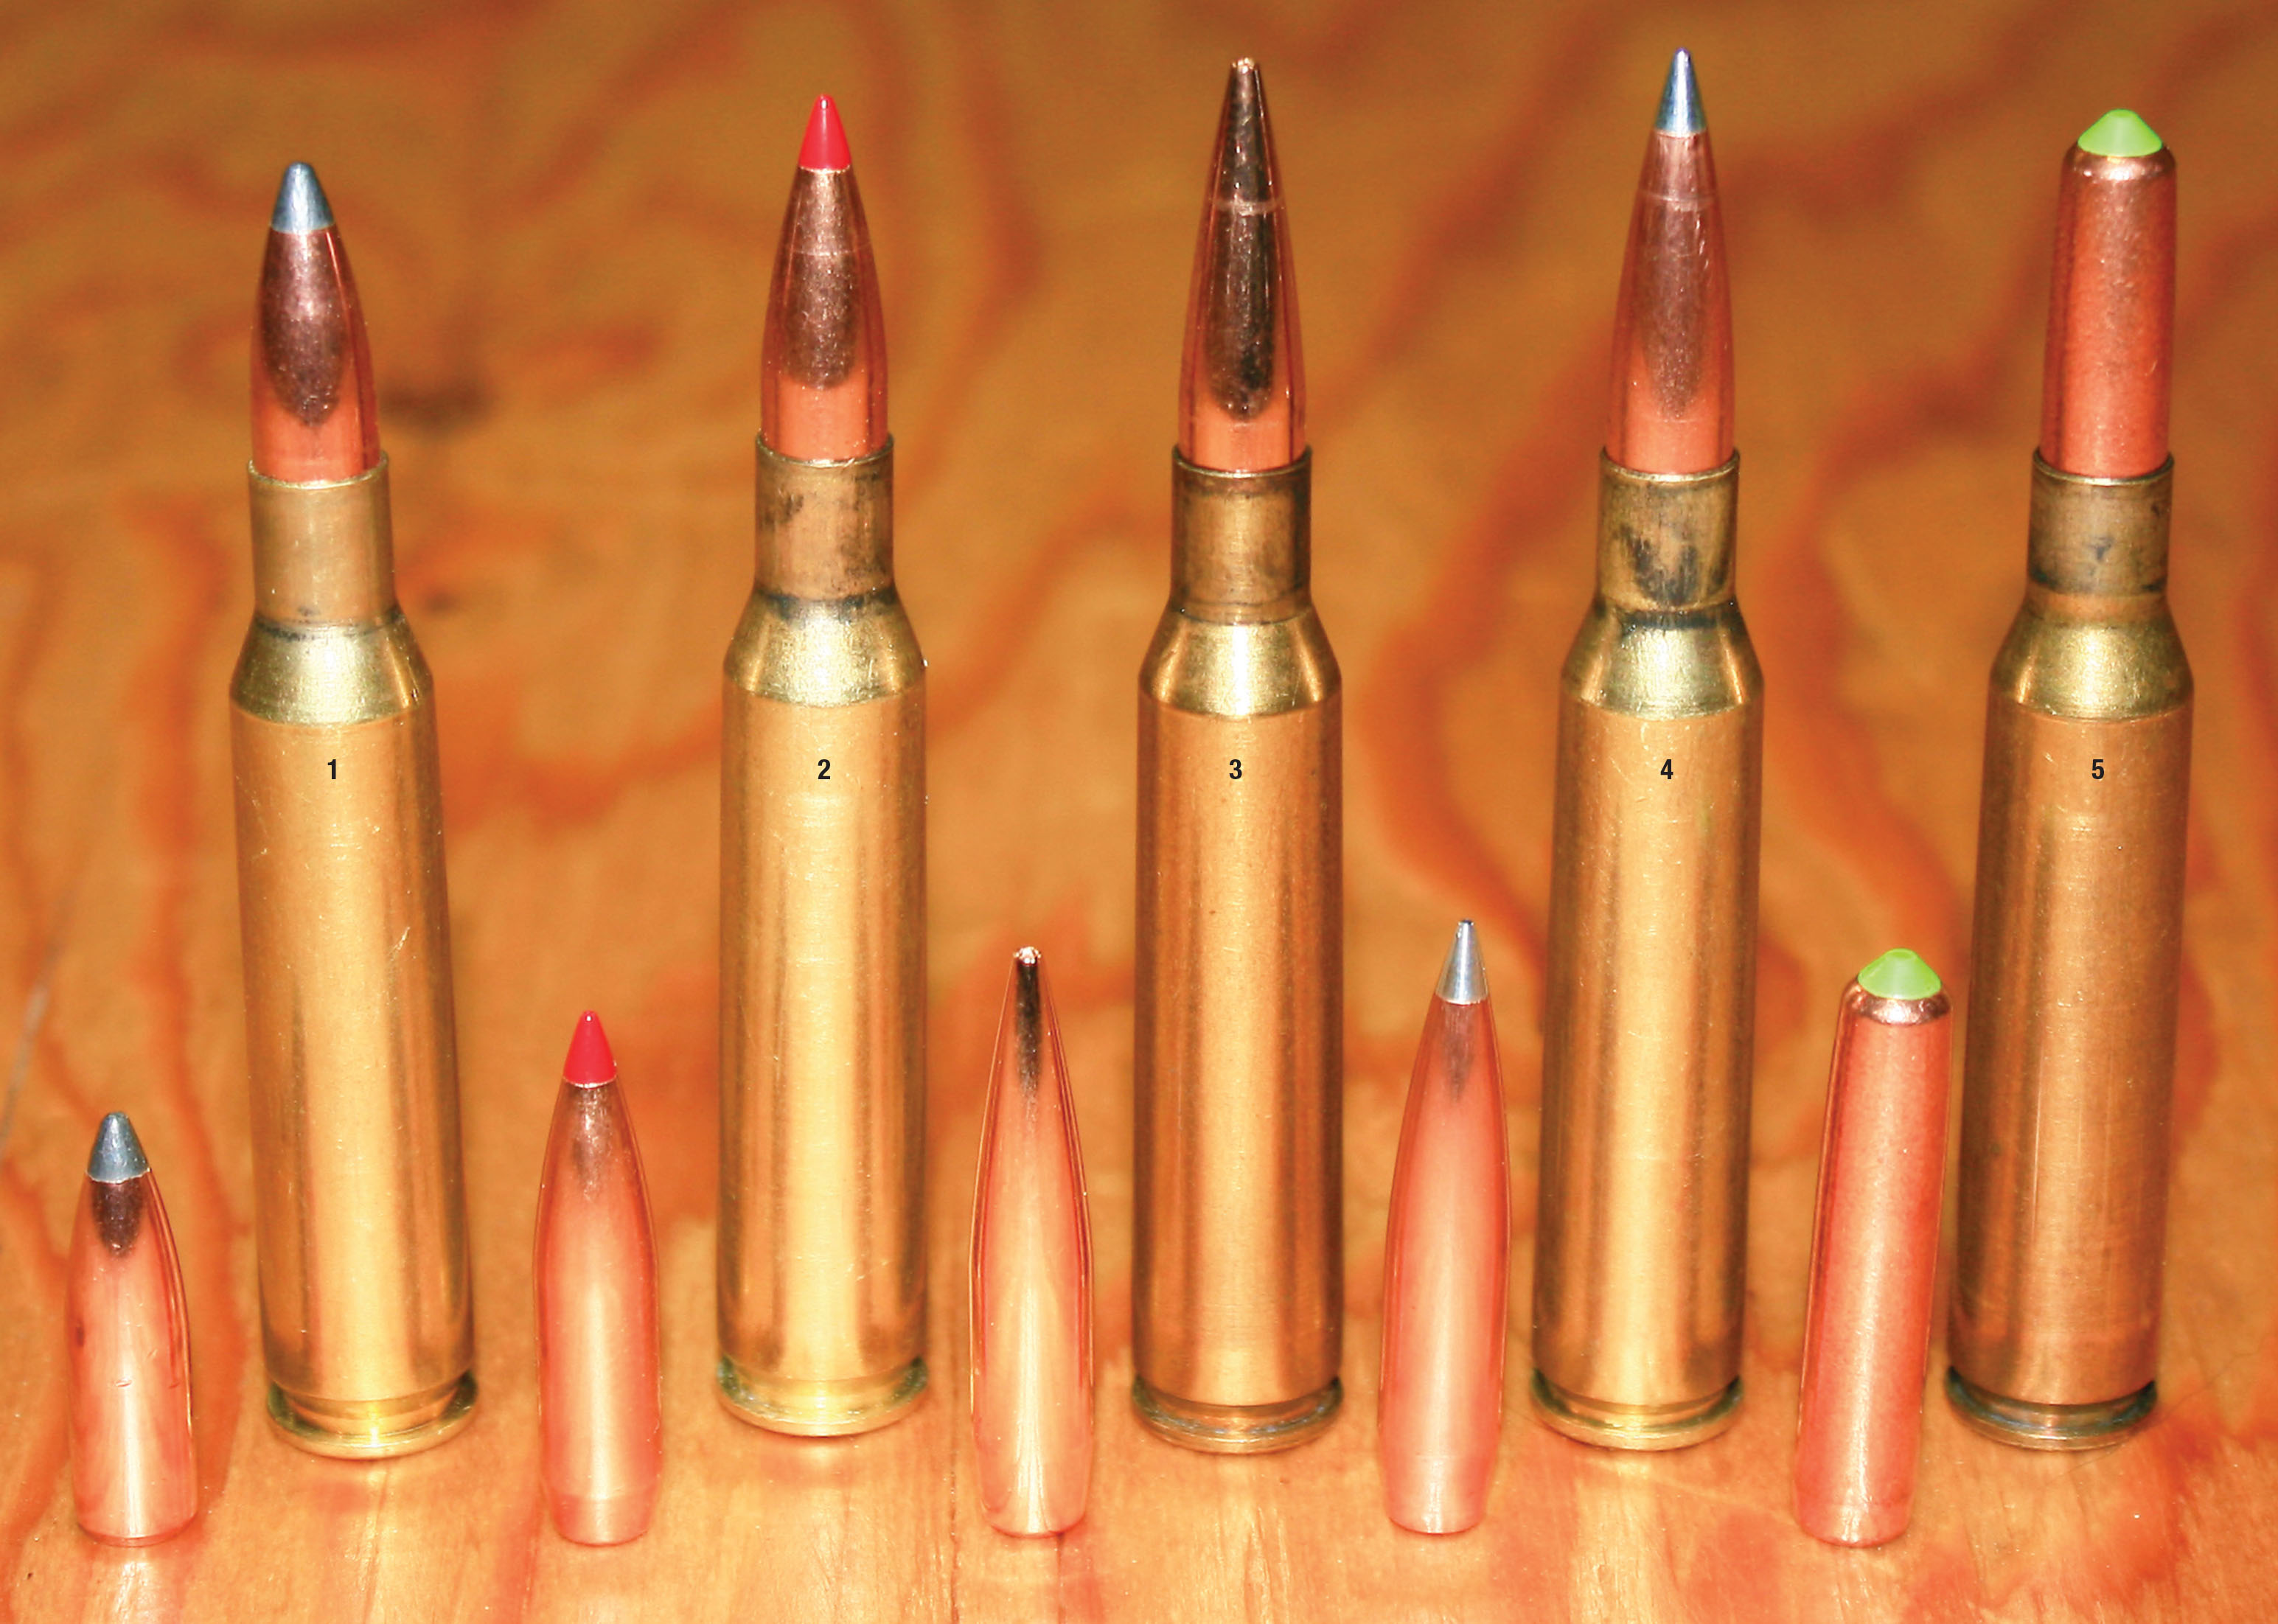 Bullets selected for testing the 6.5x57mm Mauser included the (1) Nosler 100-grain Partition, (2) Hornady 120-grain ELD Match, (3) Berger 130-grain VLD Hunting, (4) Hornady 135-grain A-Tip and the (5) Lapua 140-grain CEX Naturalis.